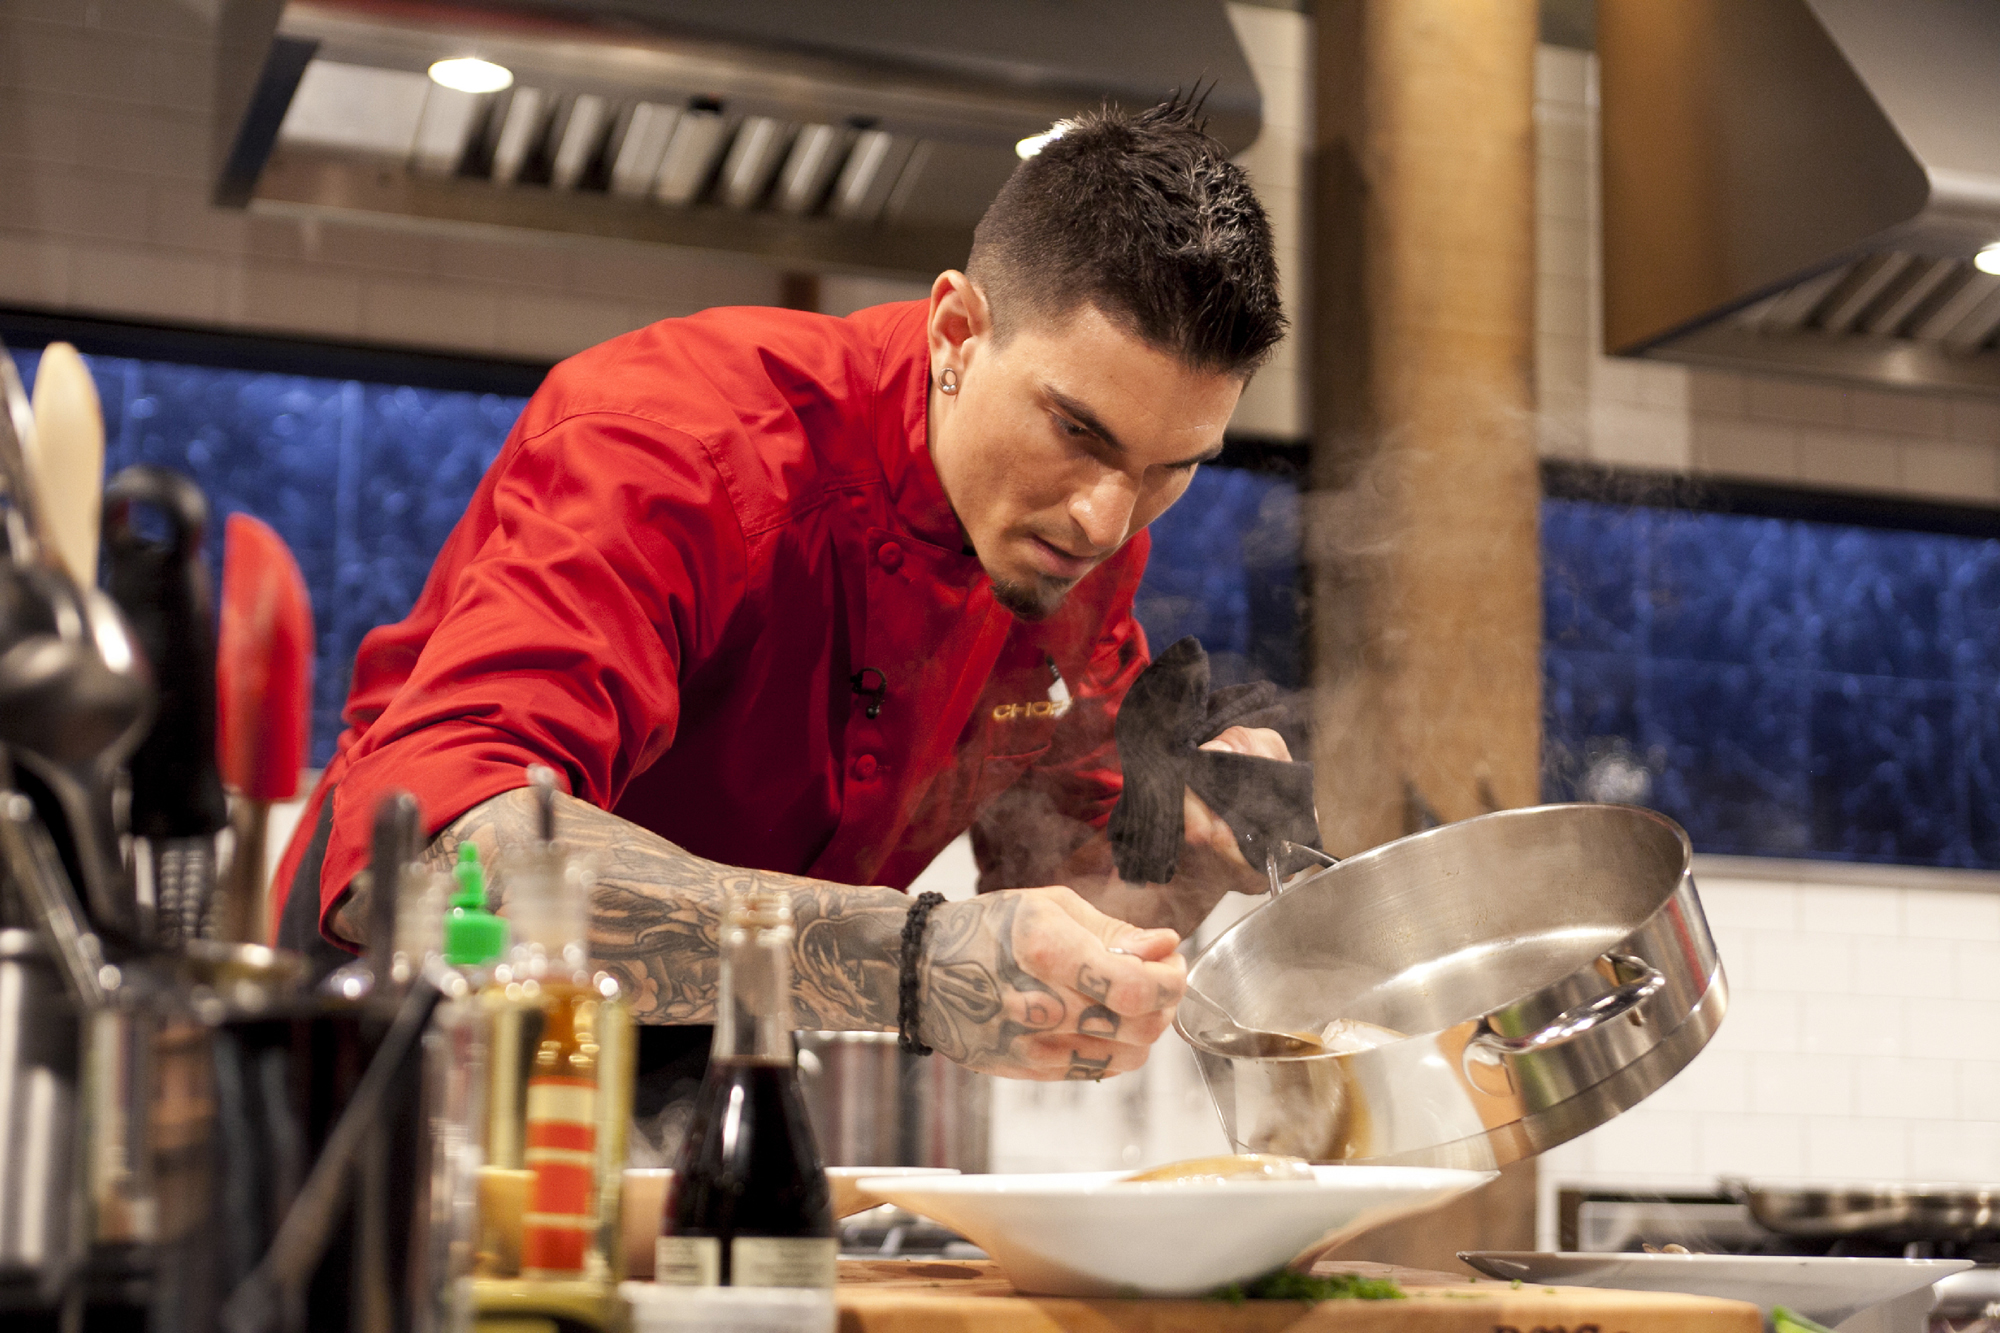 Chopped Food Network chopped all-stars season 2 chef bios | wannabe tv chef